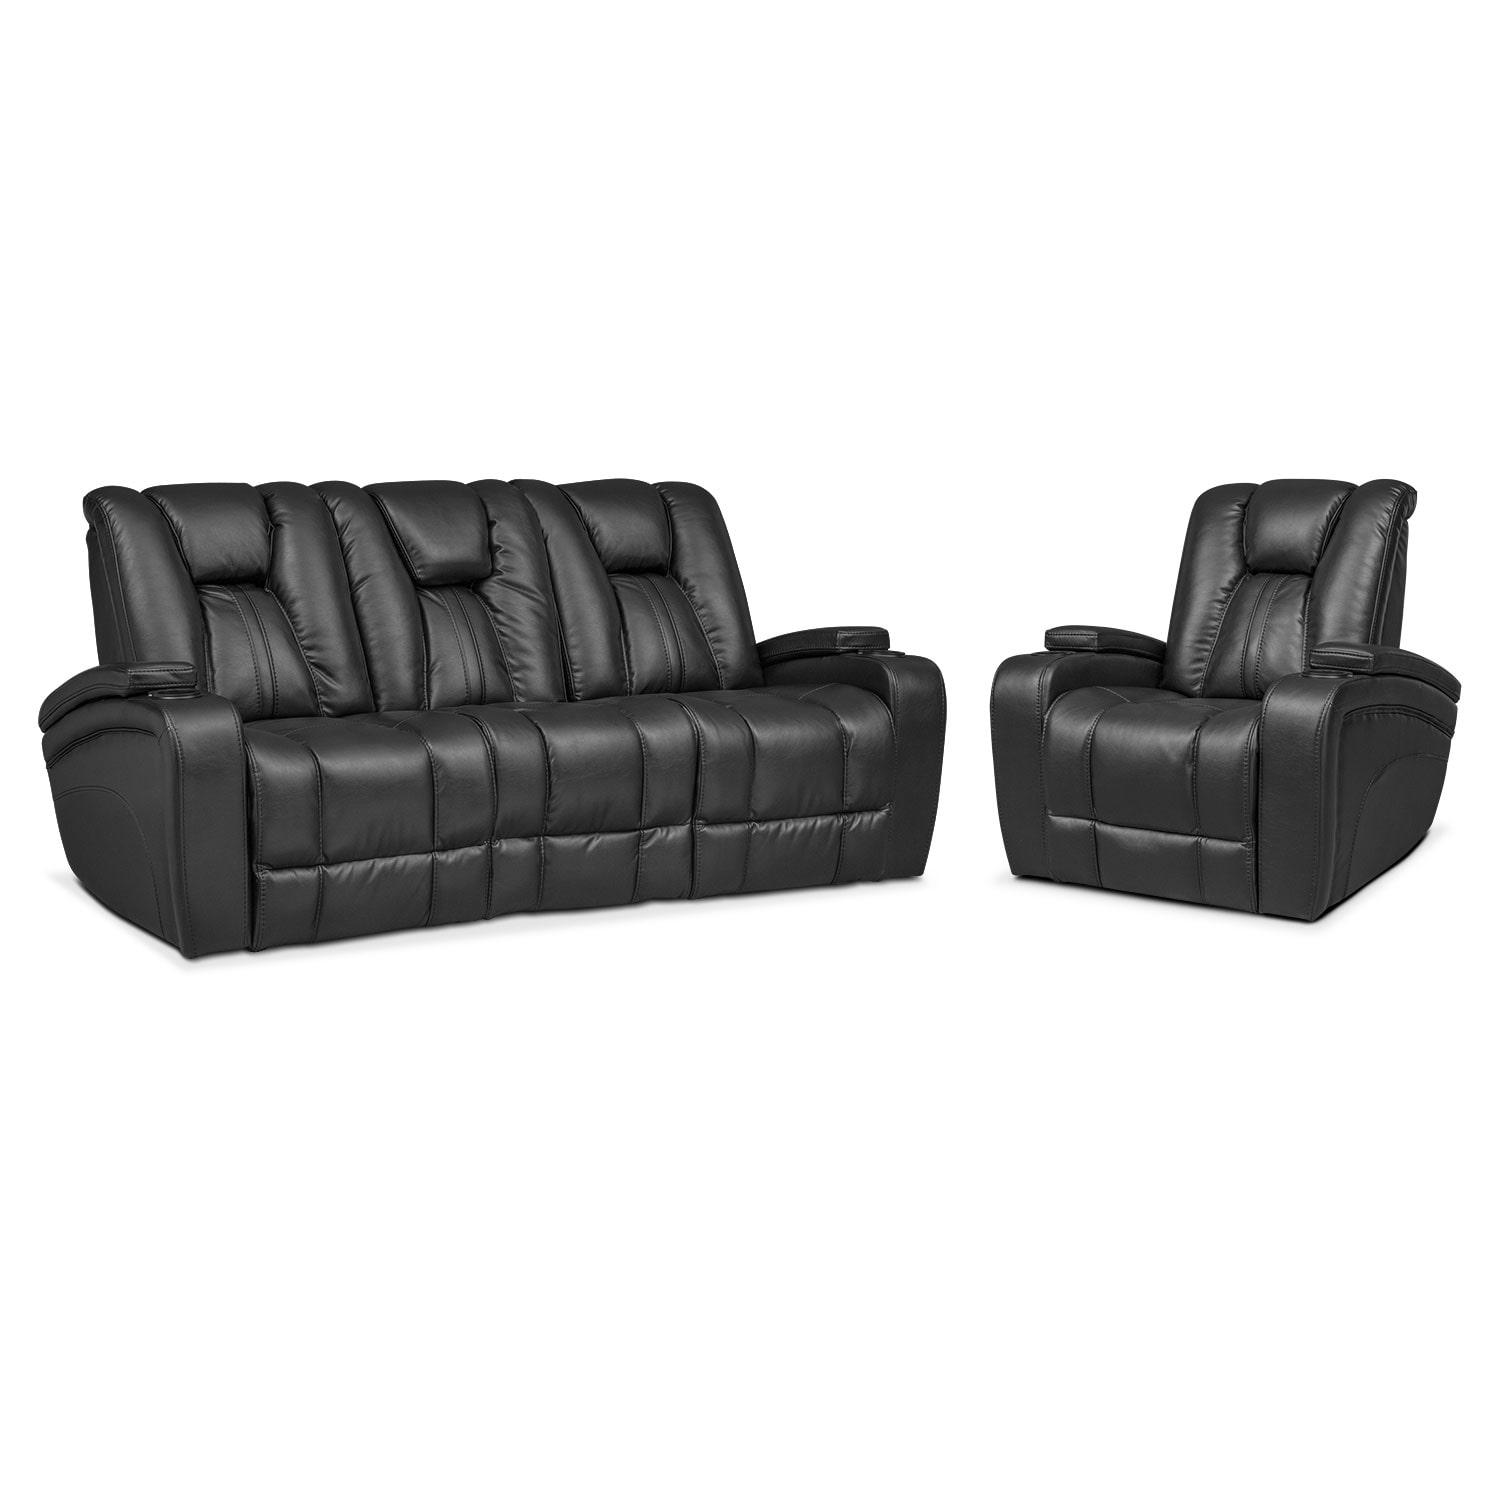 reclining been malia power successfully qty has spaces added recliner loveseat your living to cart twin recliners pdp